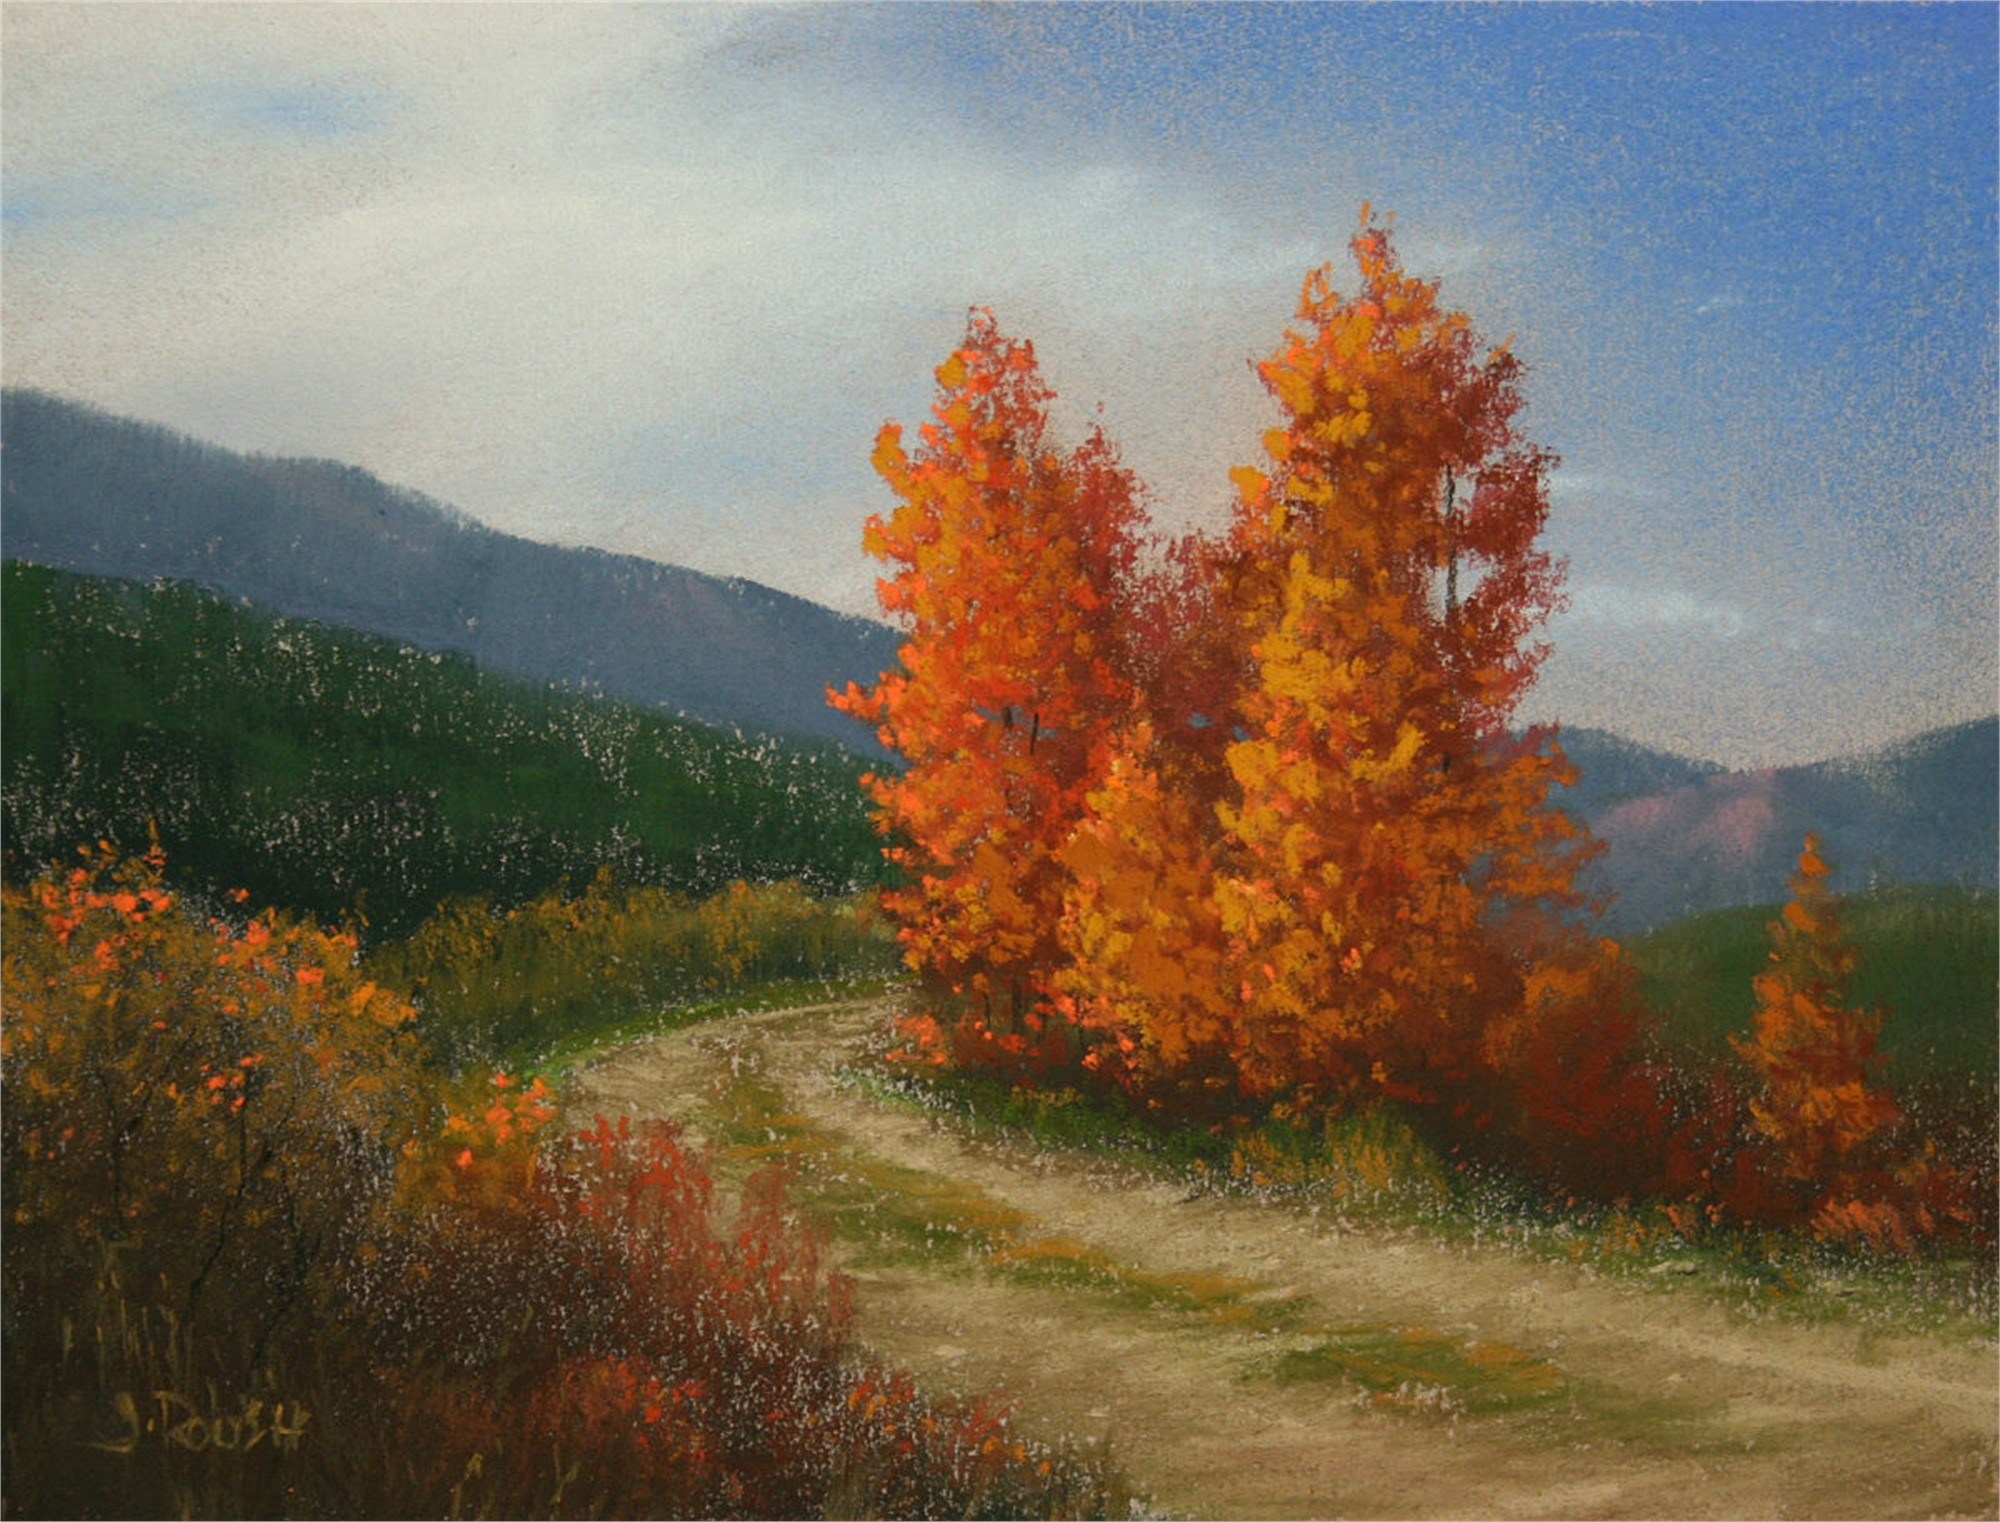 Old Mine Road by John Roush